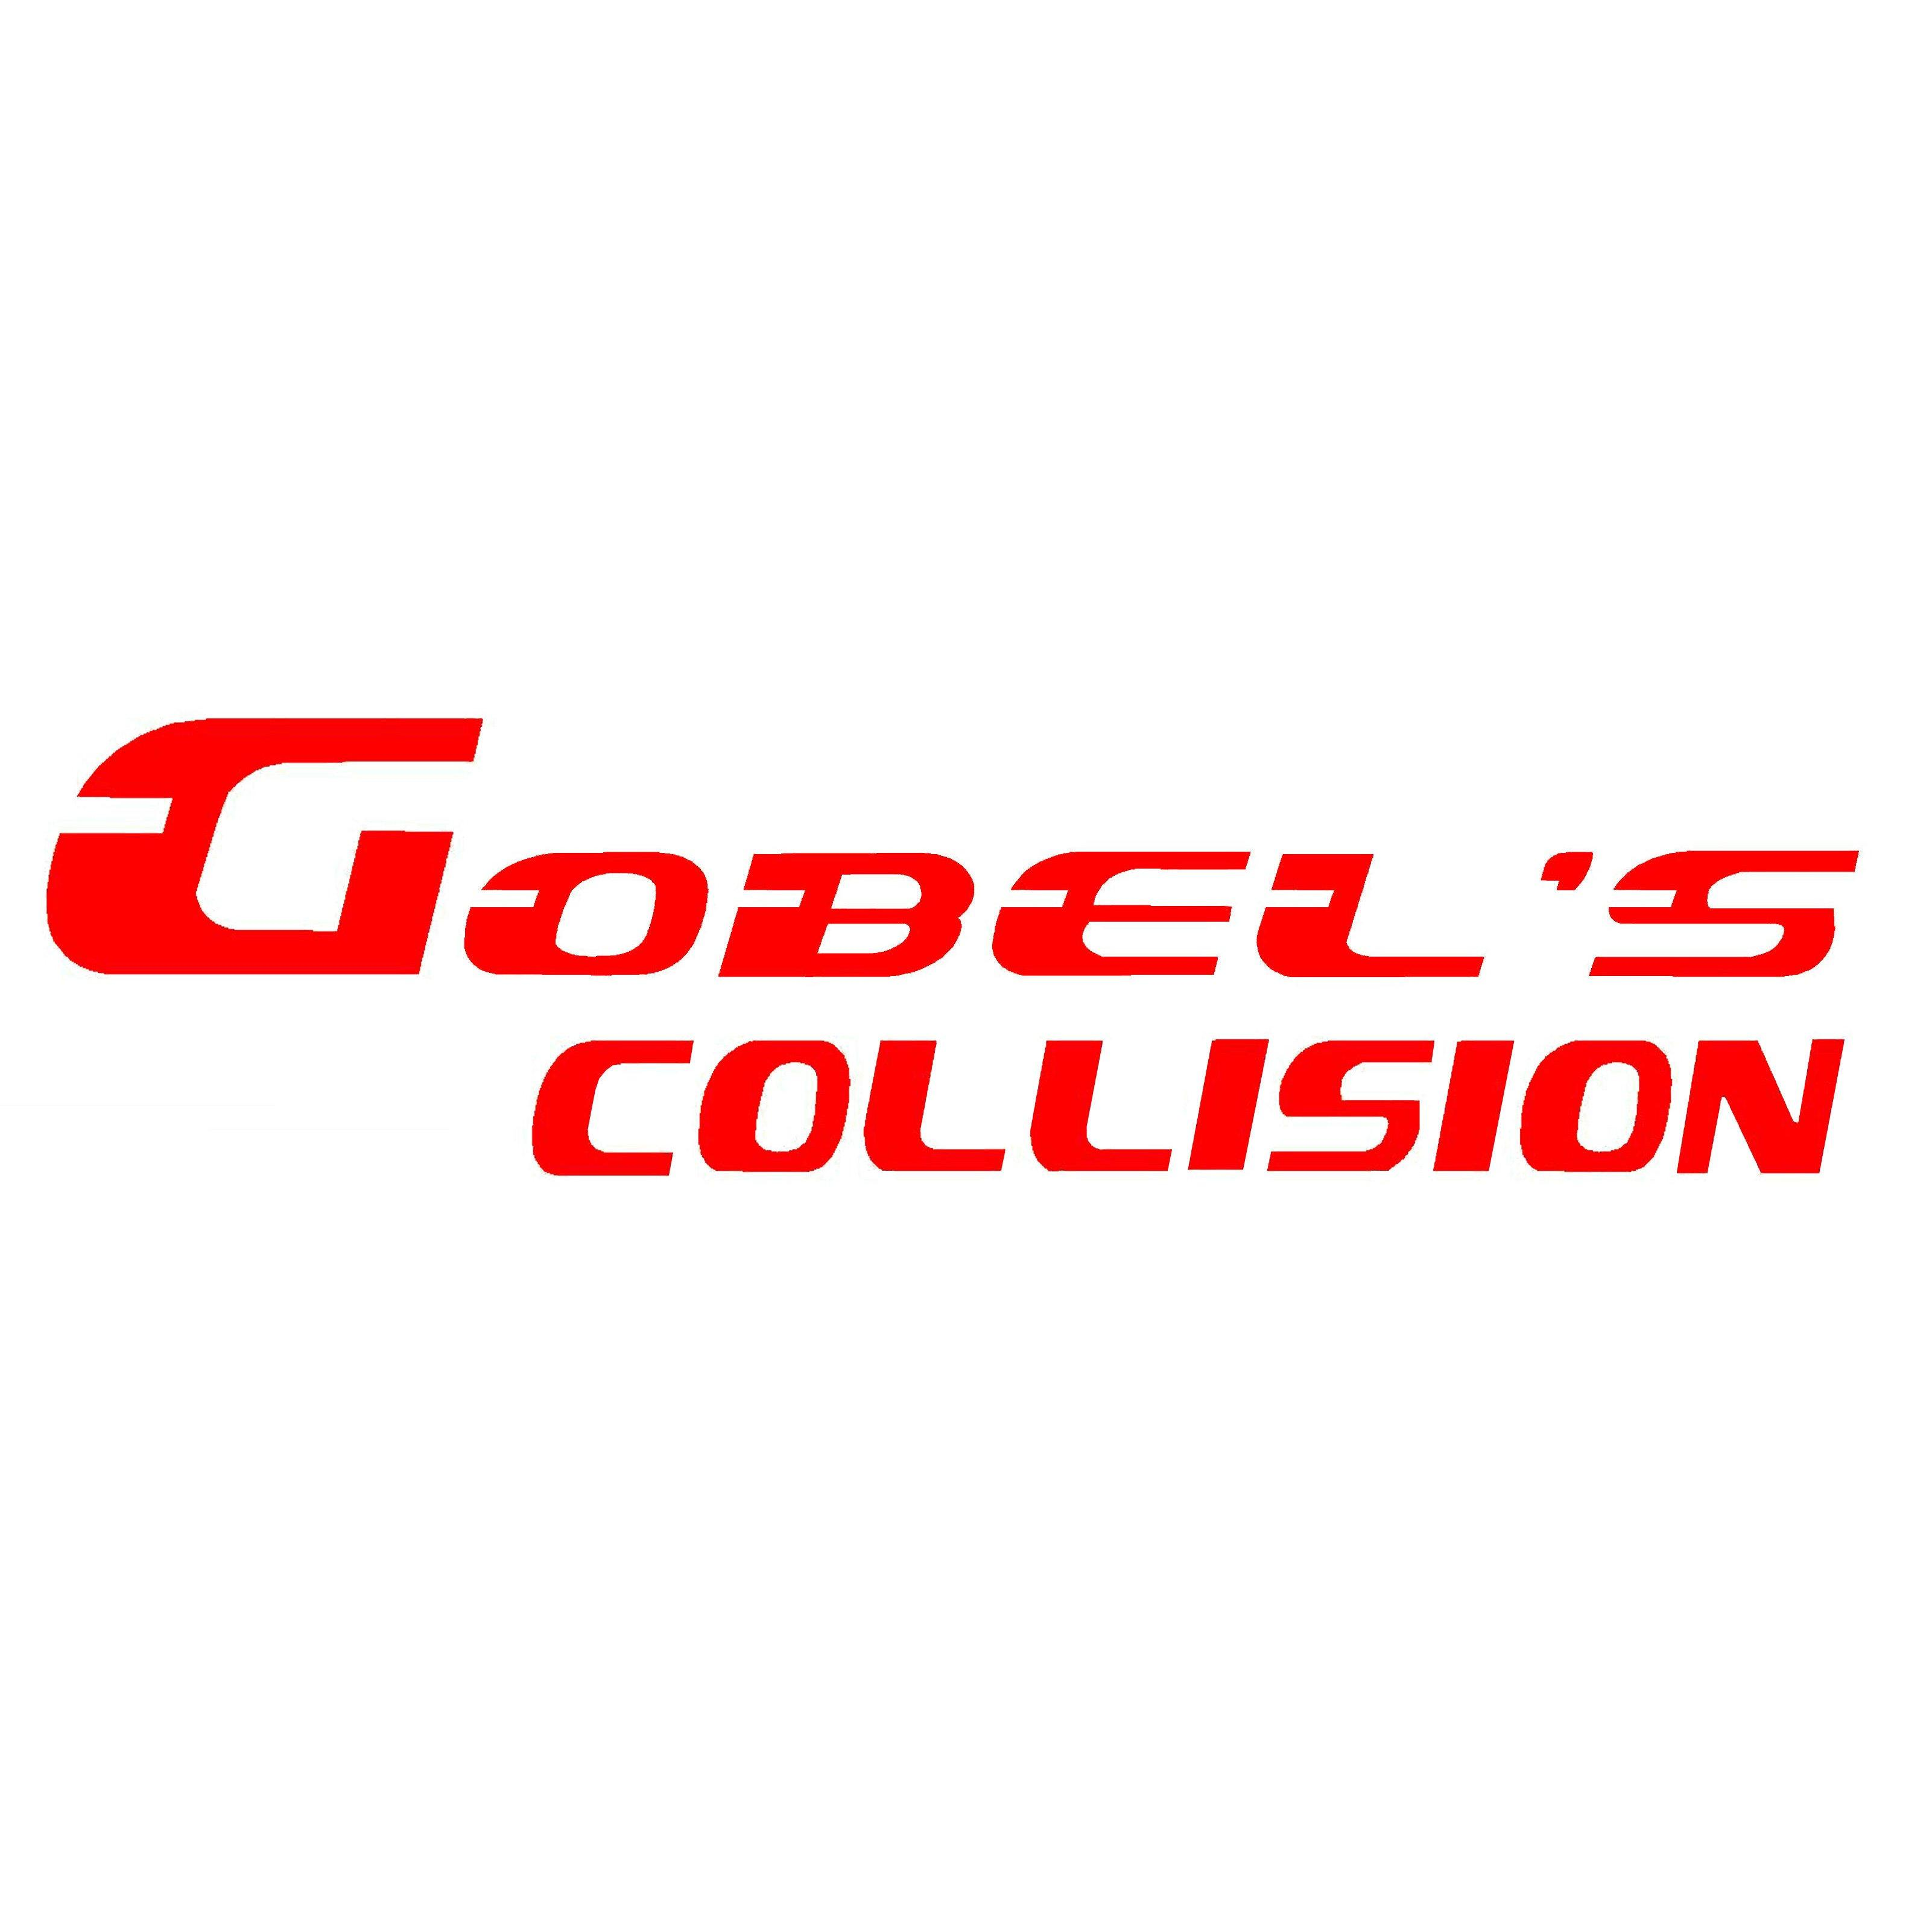 Gobel's Collision Repair, Inc.